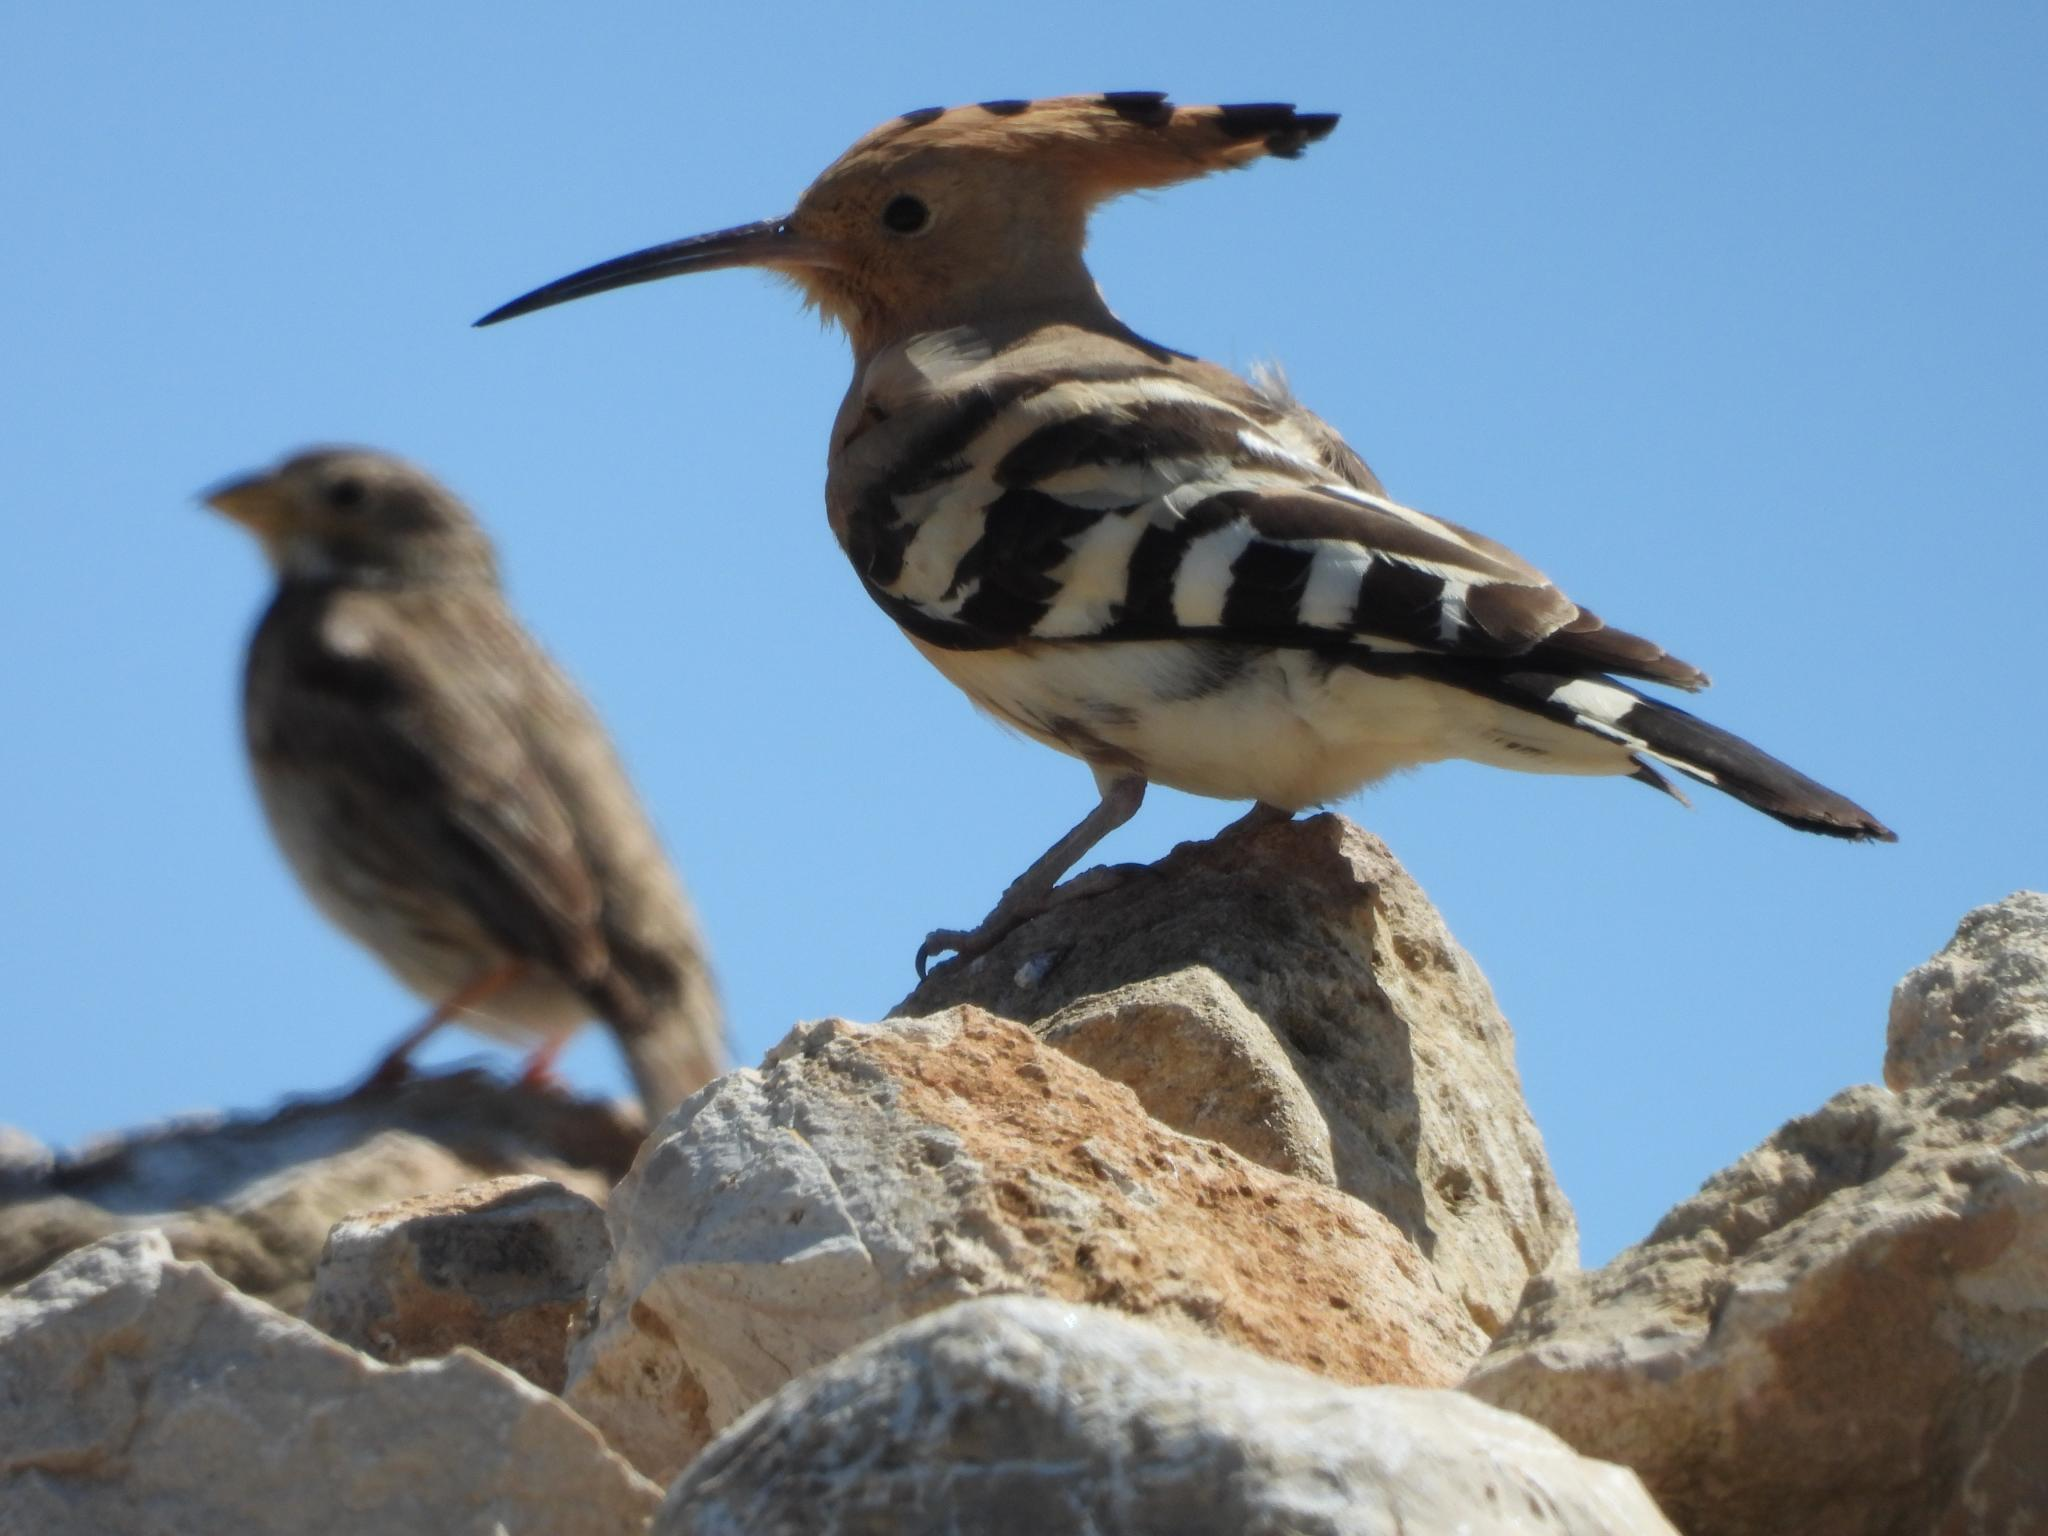 Hoopoe with a Corn Bunting in the background